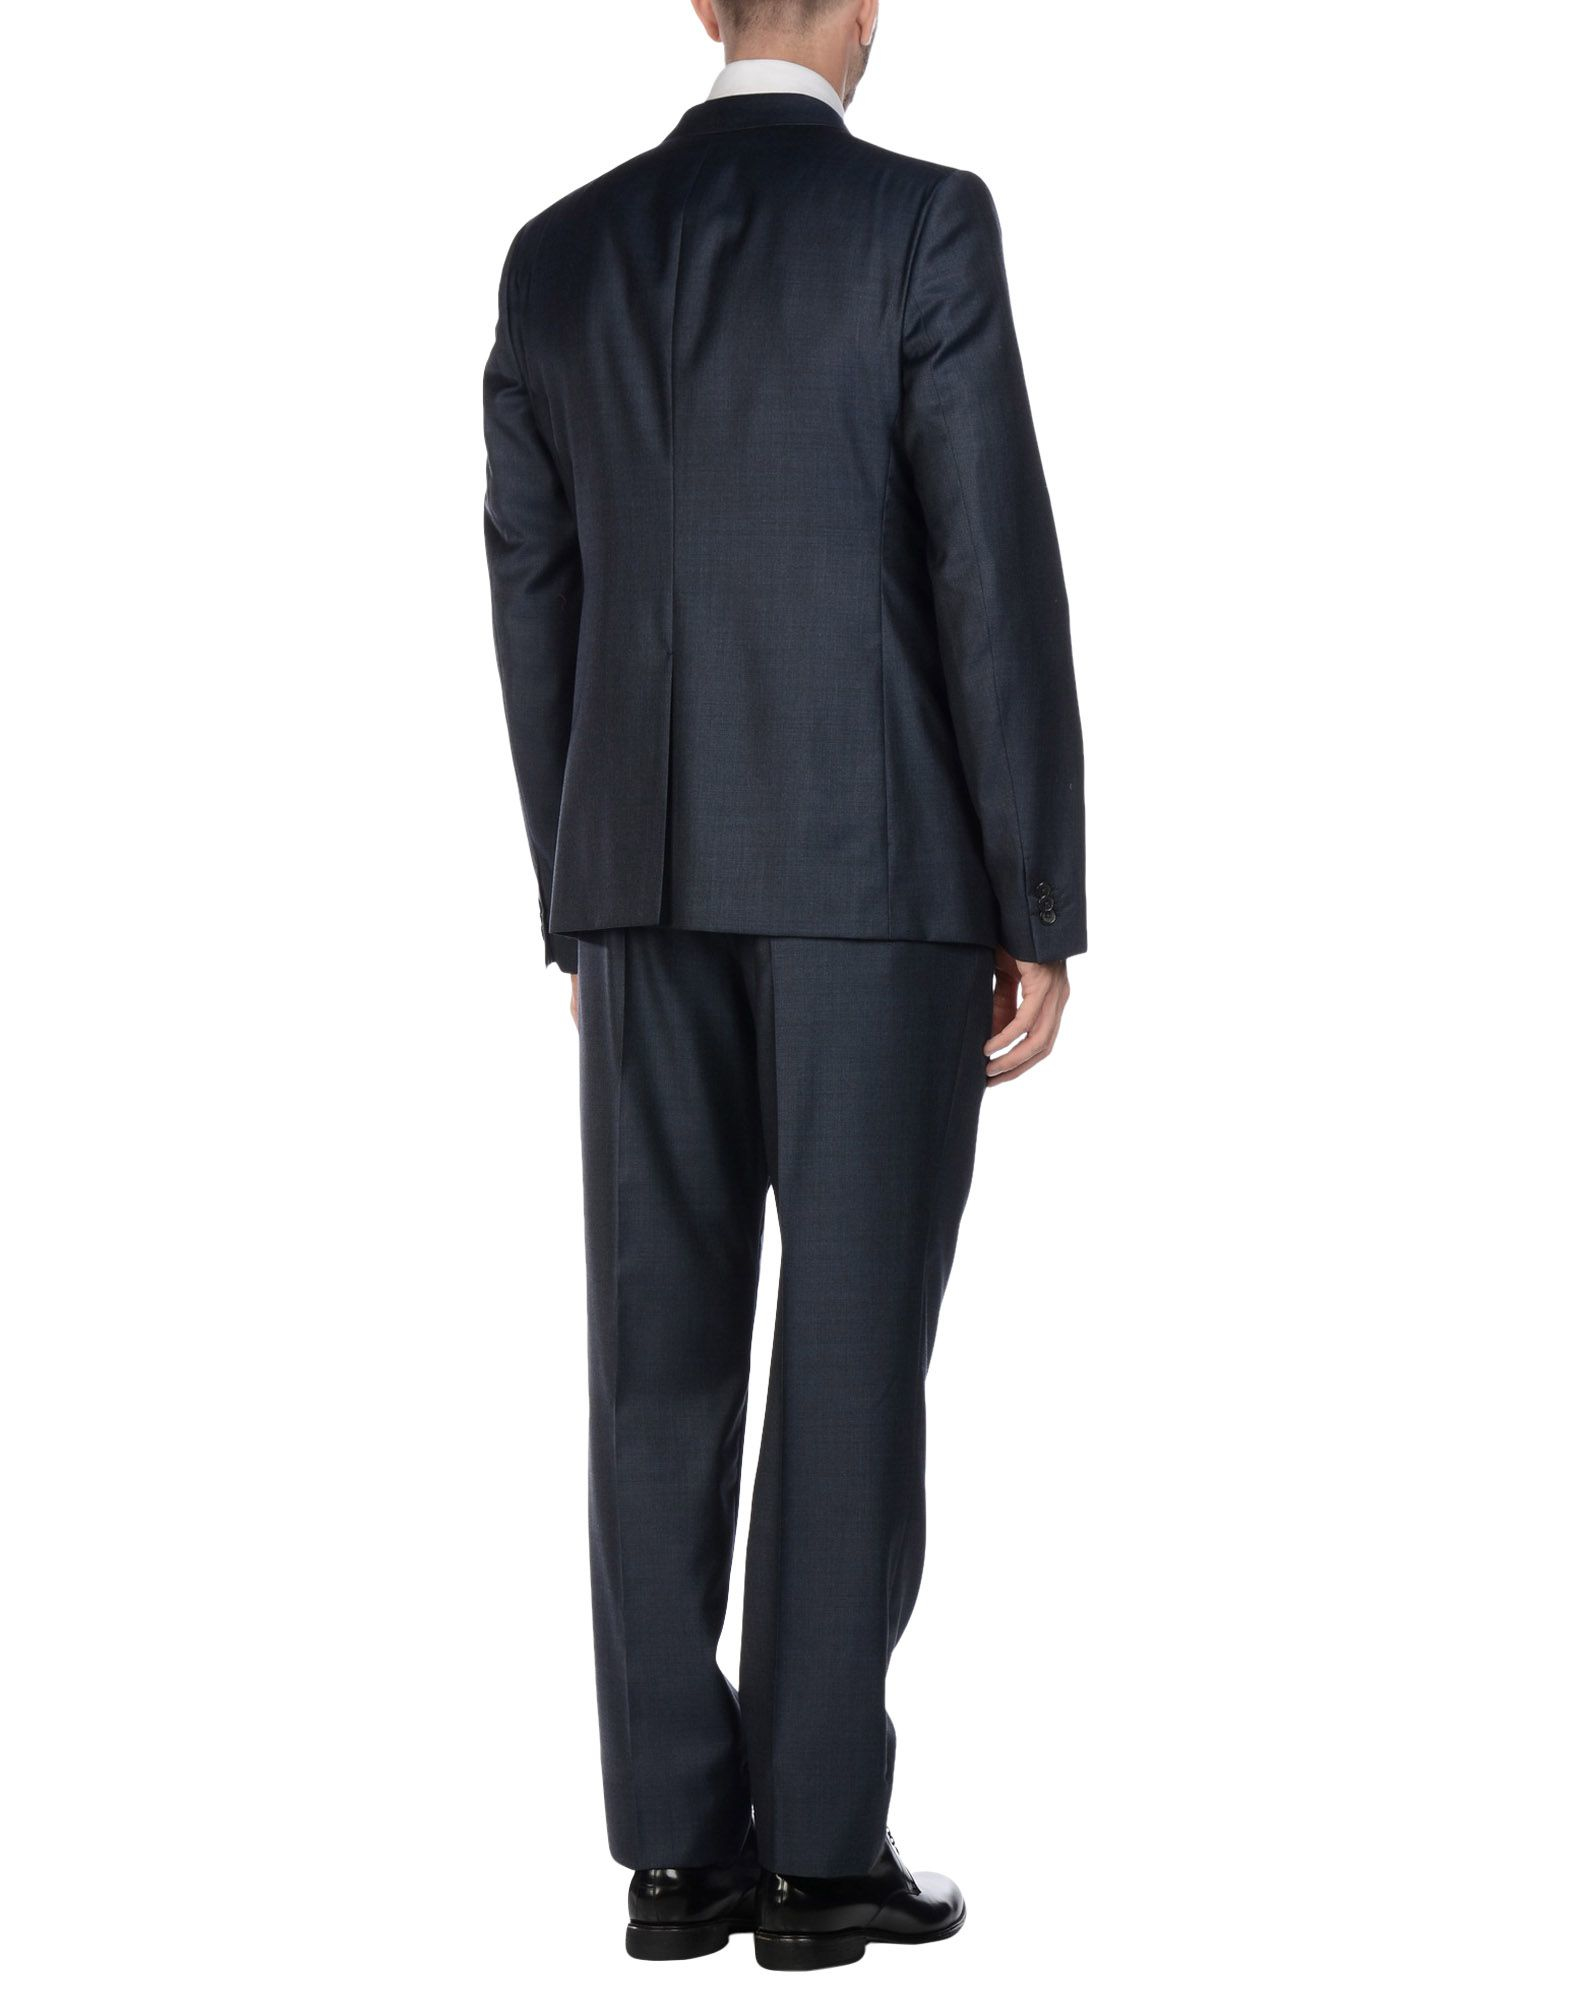 lyst jil sander suit in blue for men. Black Bedroom Furniture Sets. Home Design Ideas